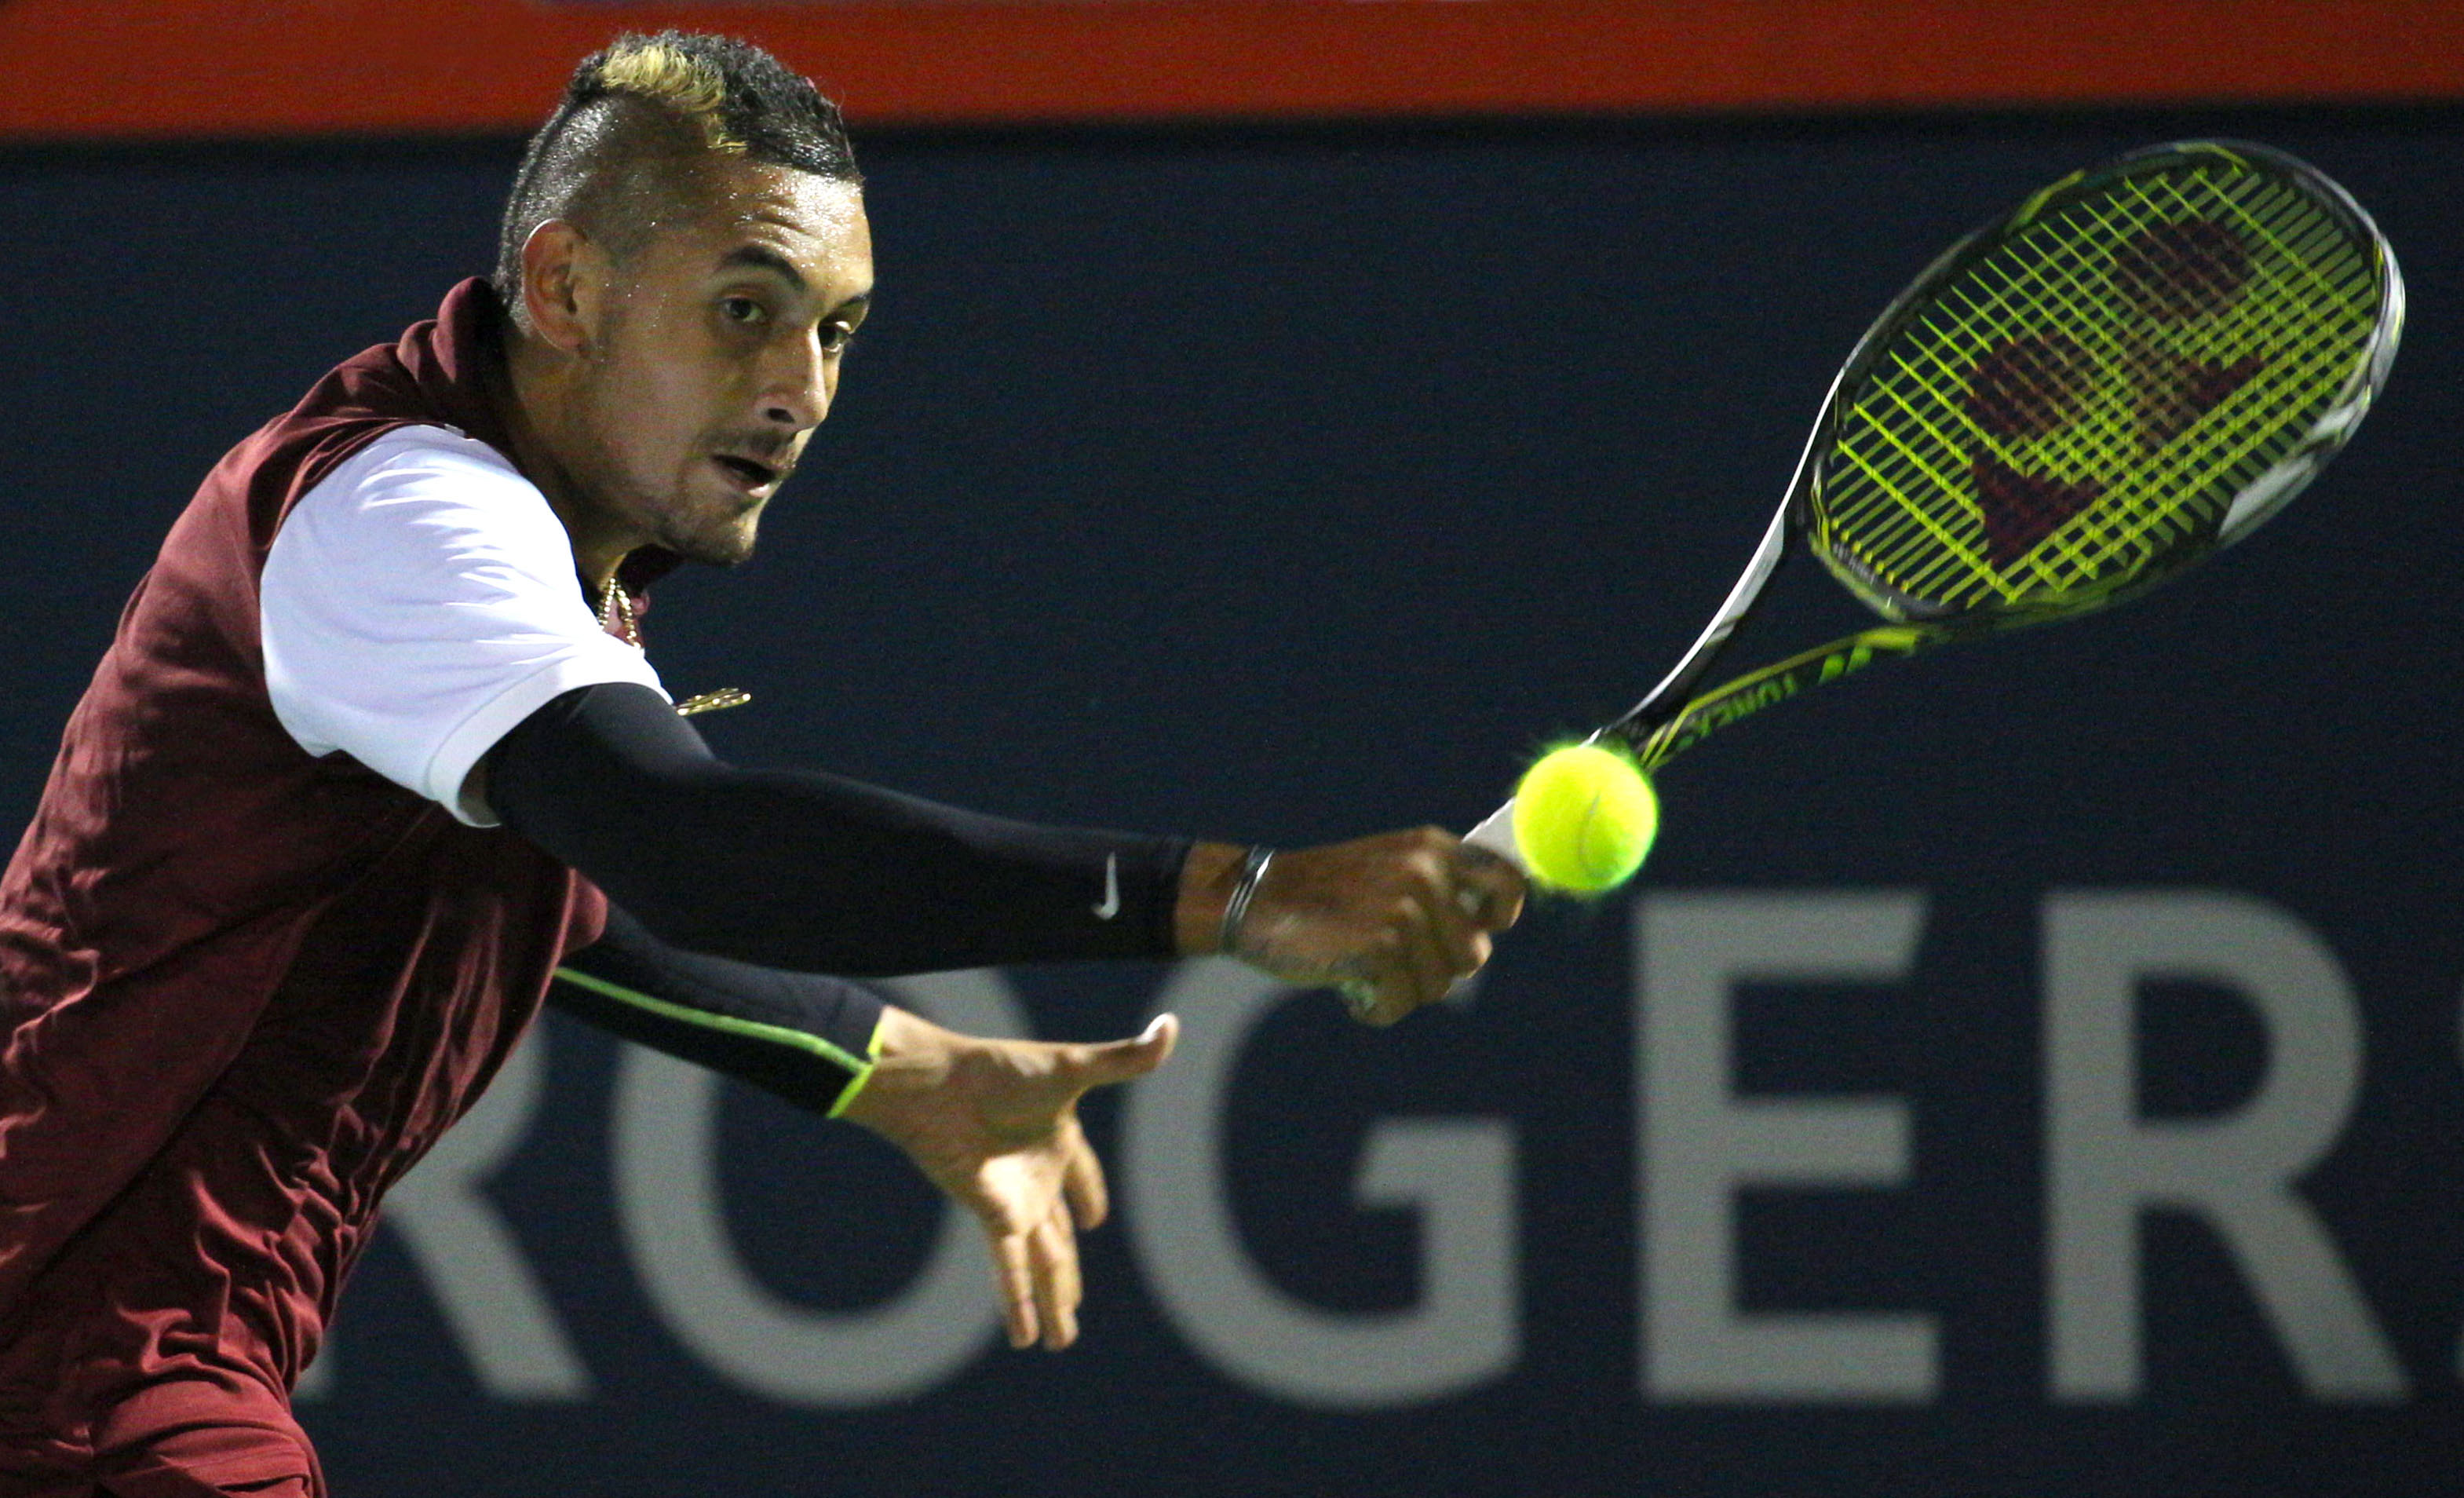 Nick Kyrgios of Australia hits a shot against Stan Wawrinka of Switzerland during the Rogers Cup tennis tournament in Montreal, Quebec, Canada on August 12, 2015.